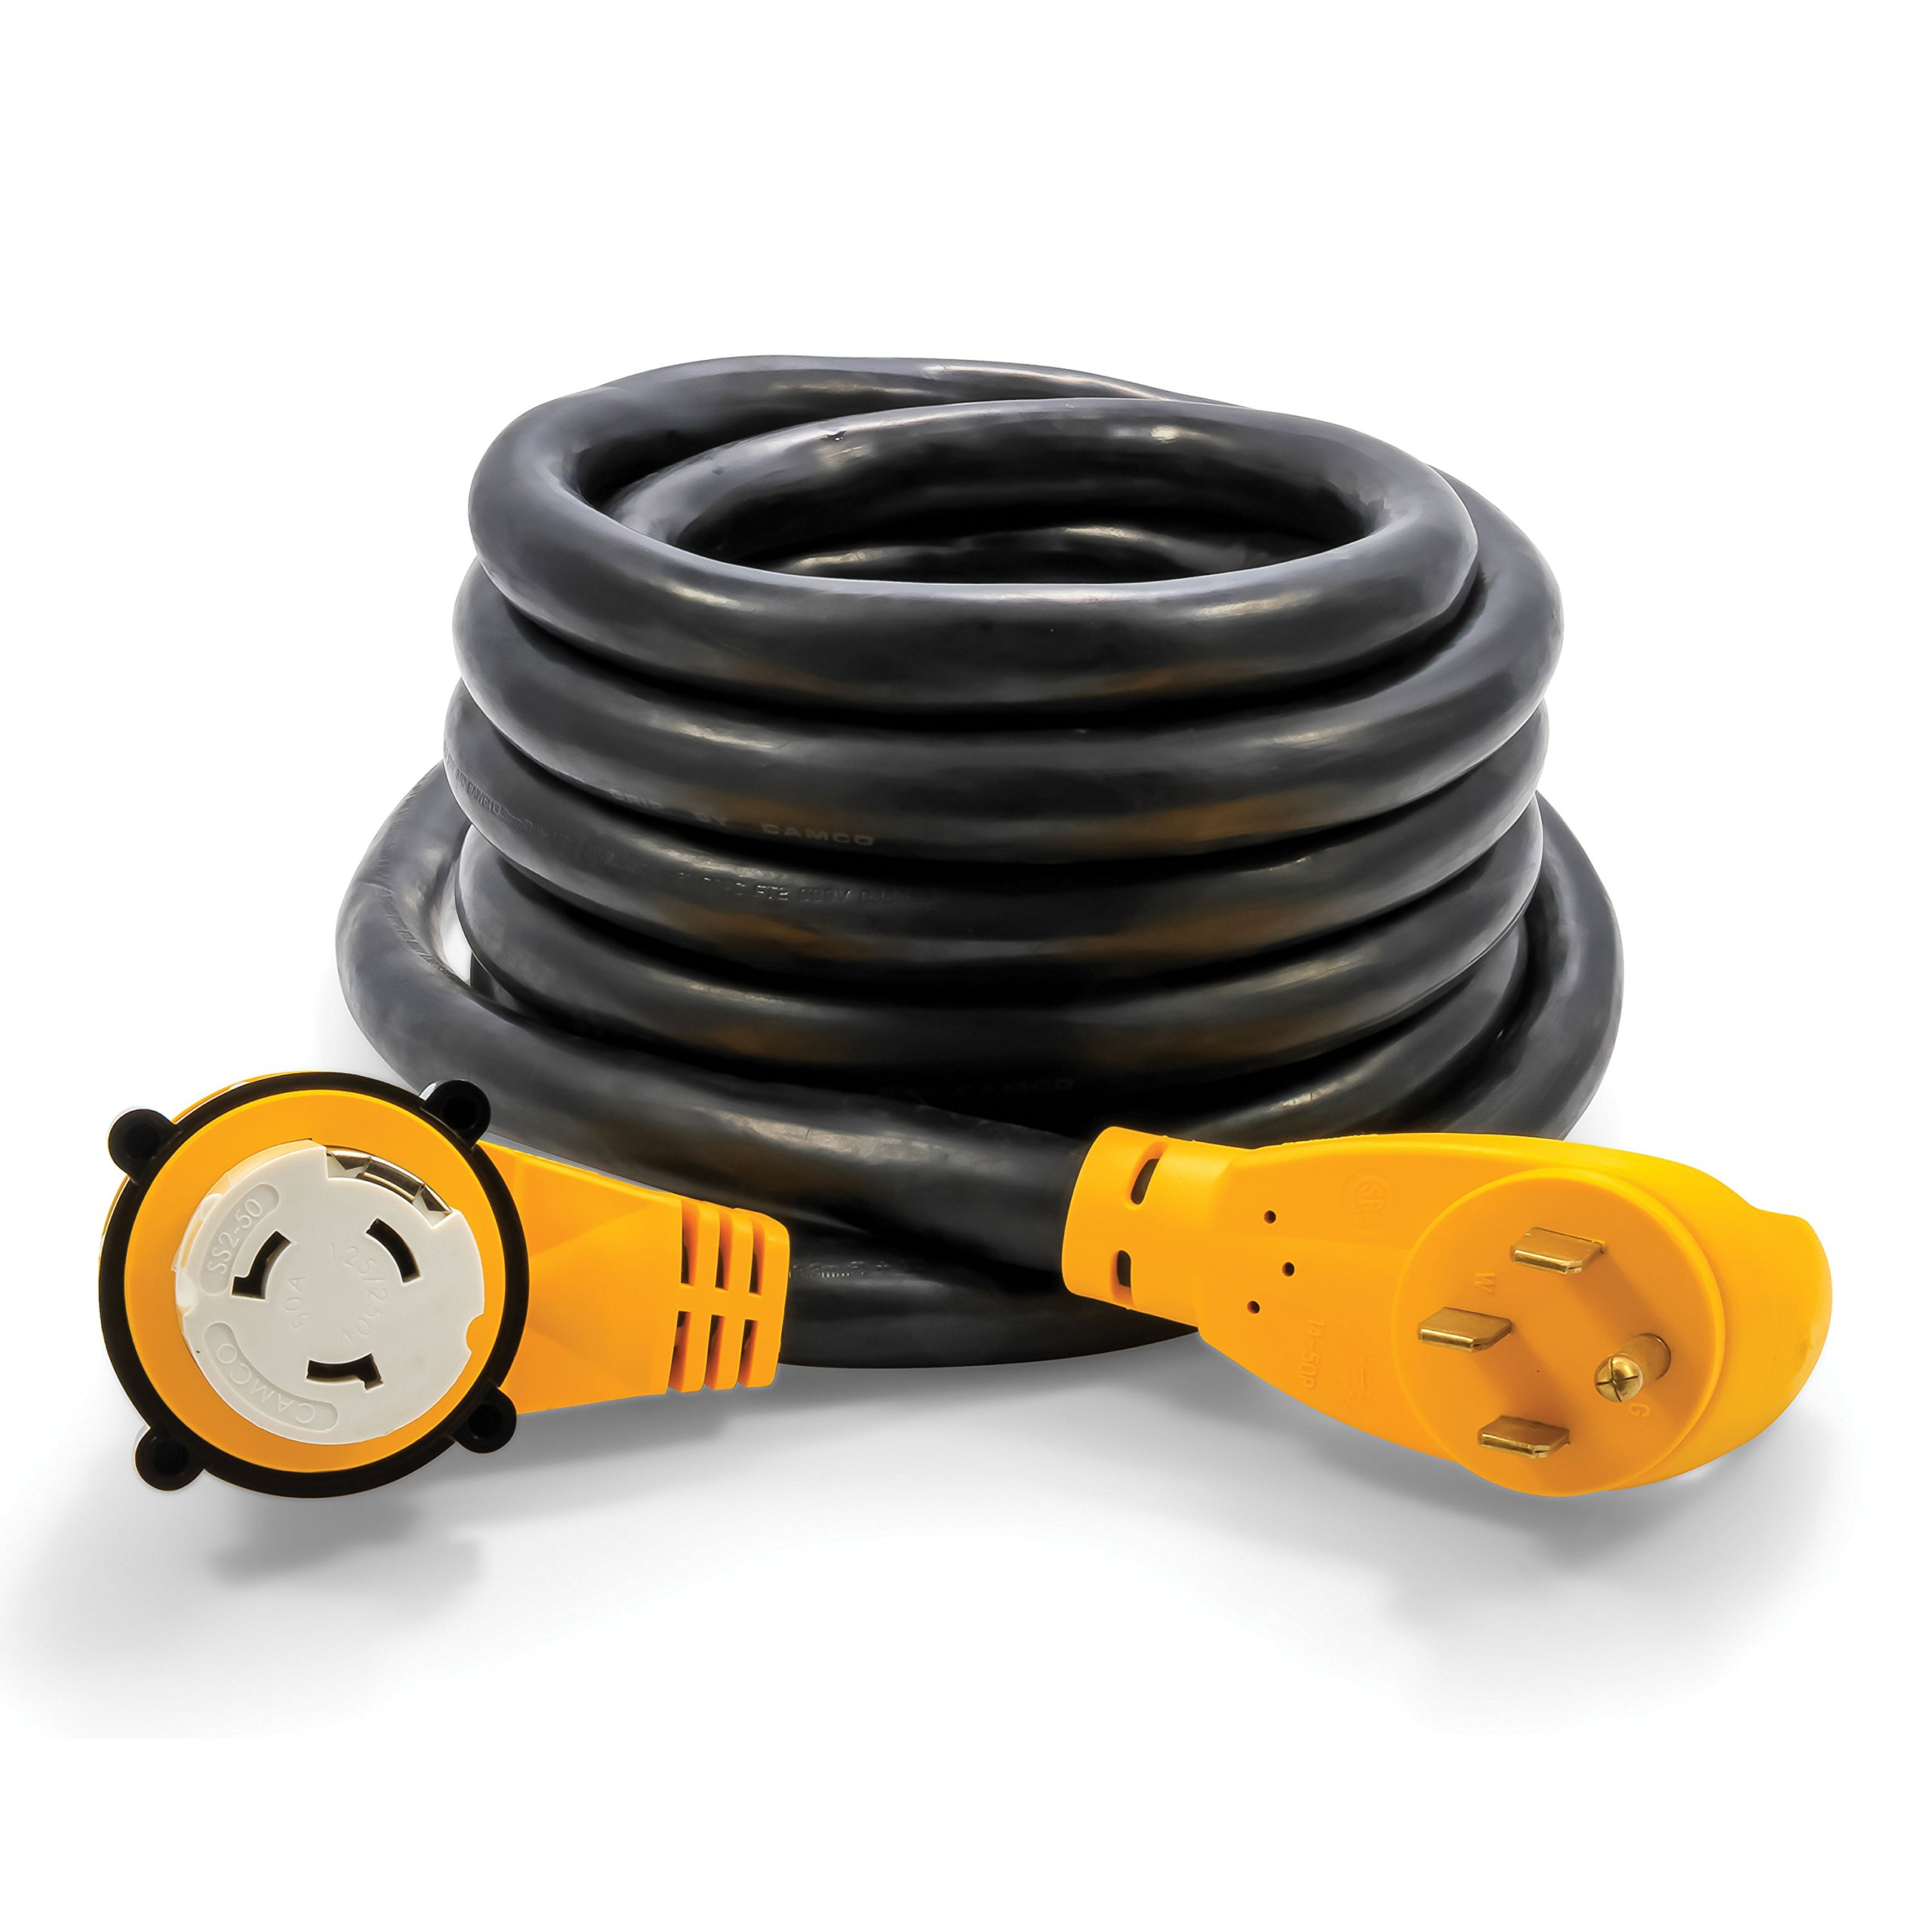 Camco 25 Foot Extension Cord - 50 Amp Standard Male to 50 Amp 90 Degree Female Locking Adapter (55574) by Camco (Image #1)